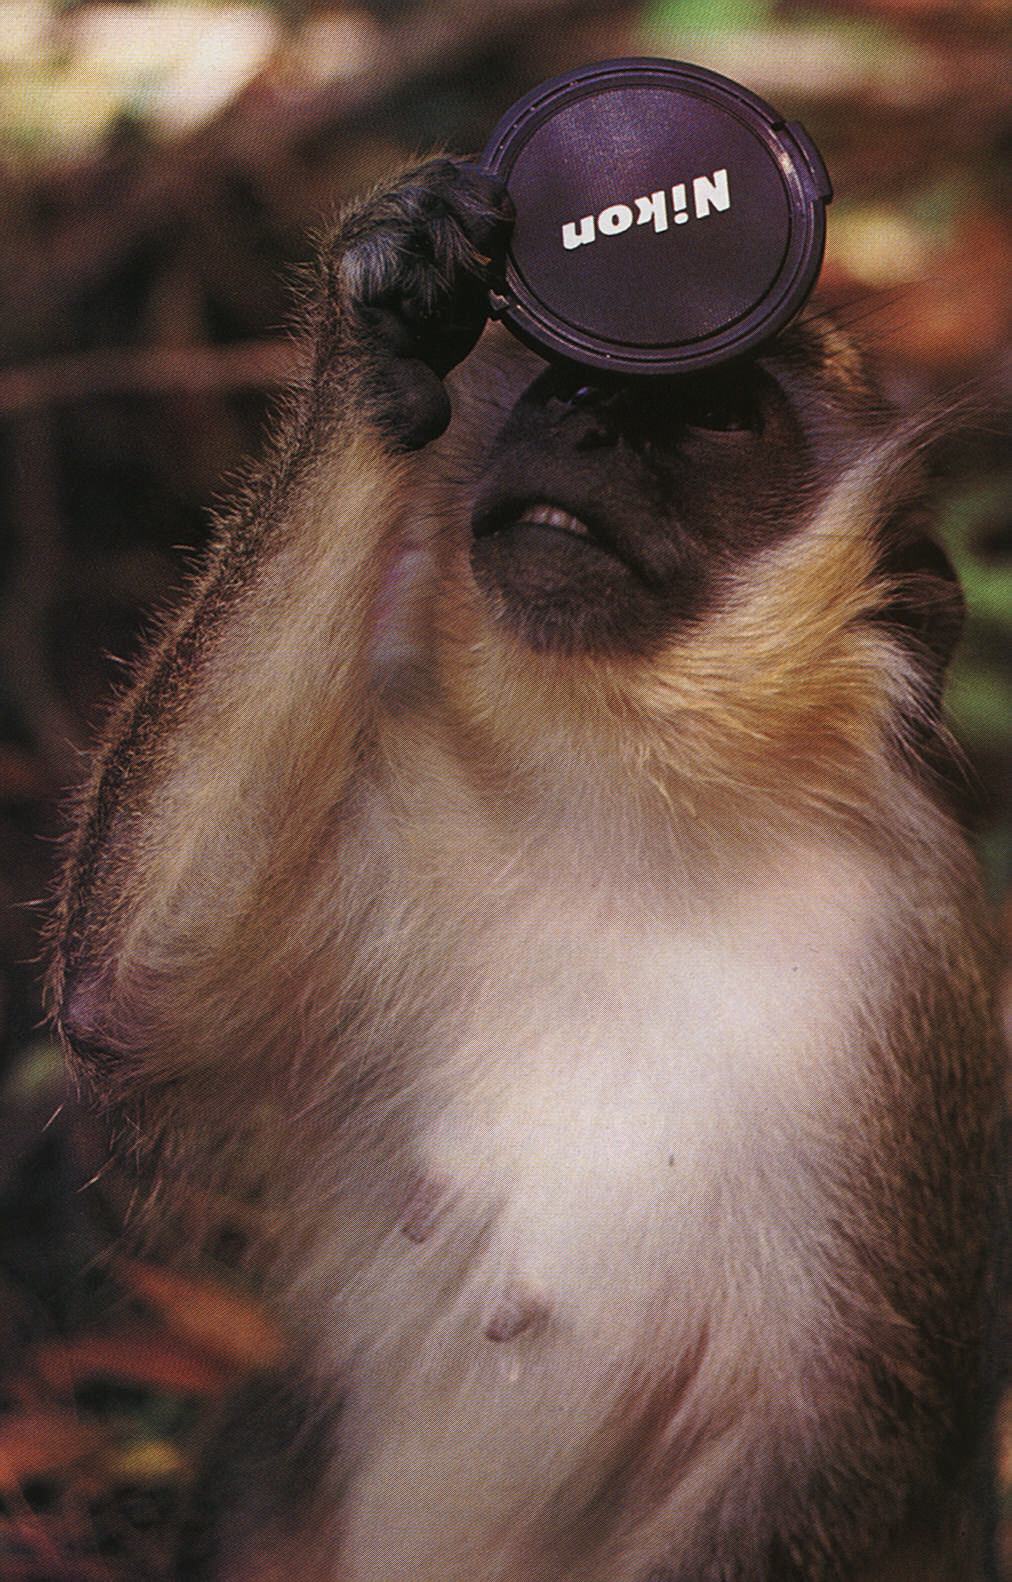 Field research: a Barbados green monkey in the wild. But who's studying who? Photograph by J. Horrocks